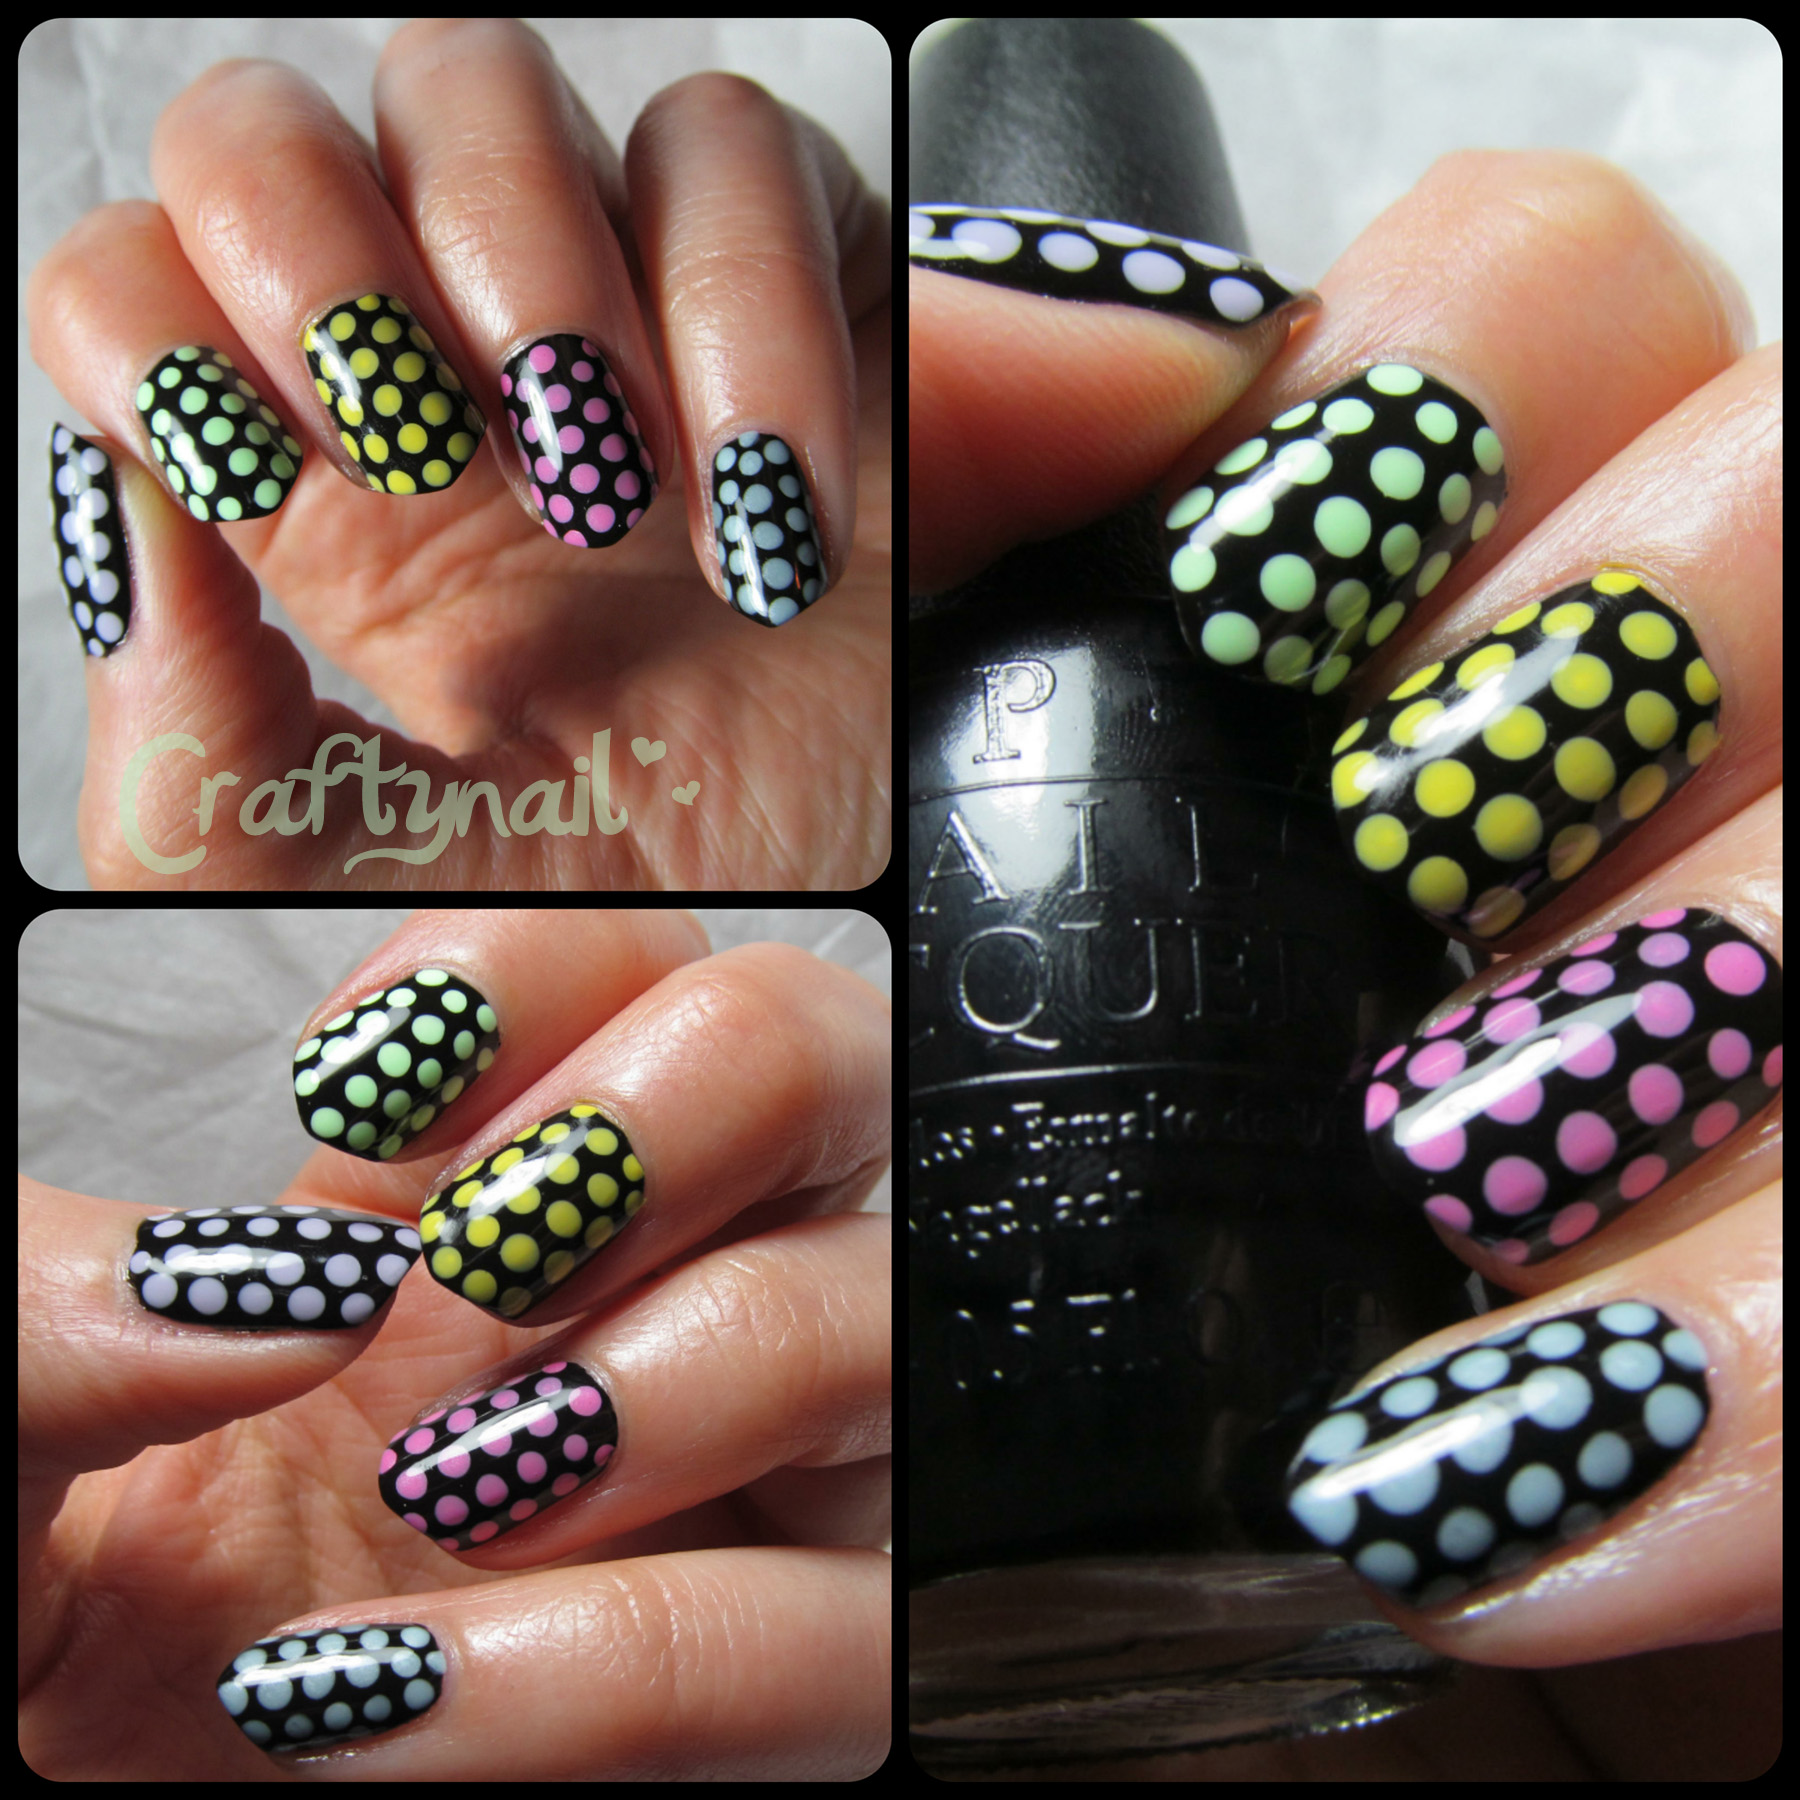 March | 2014 | Craftynail